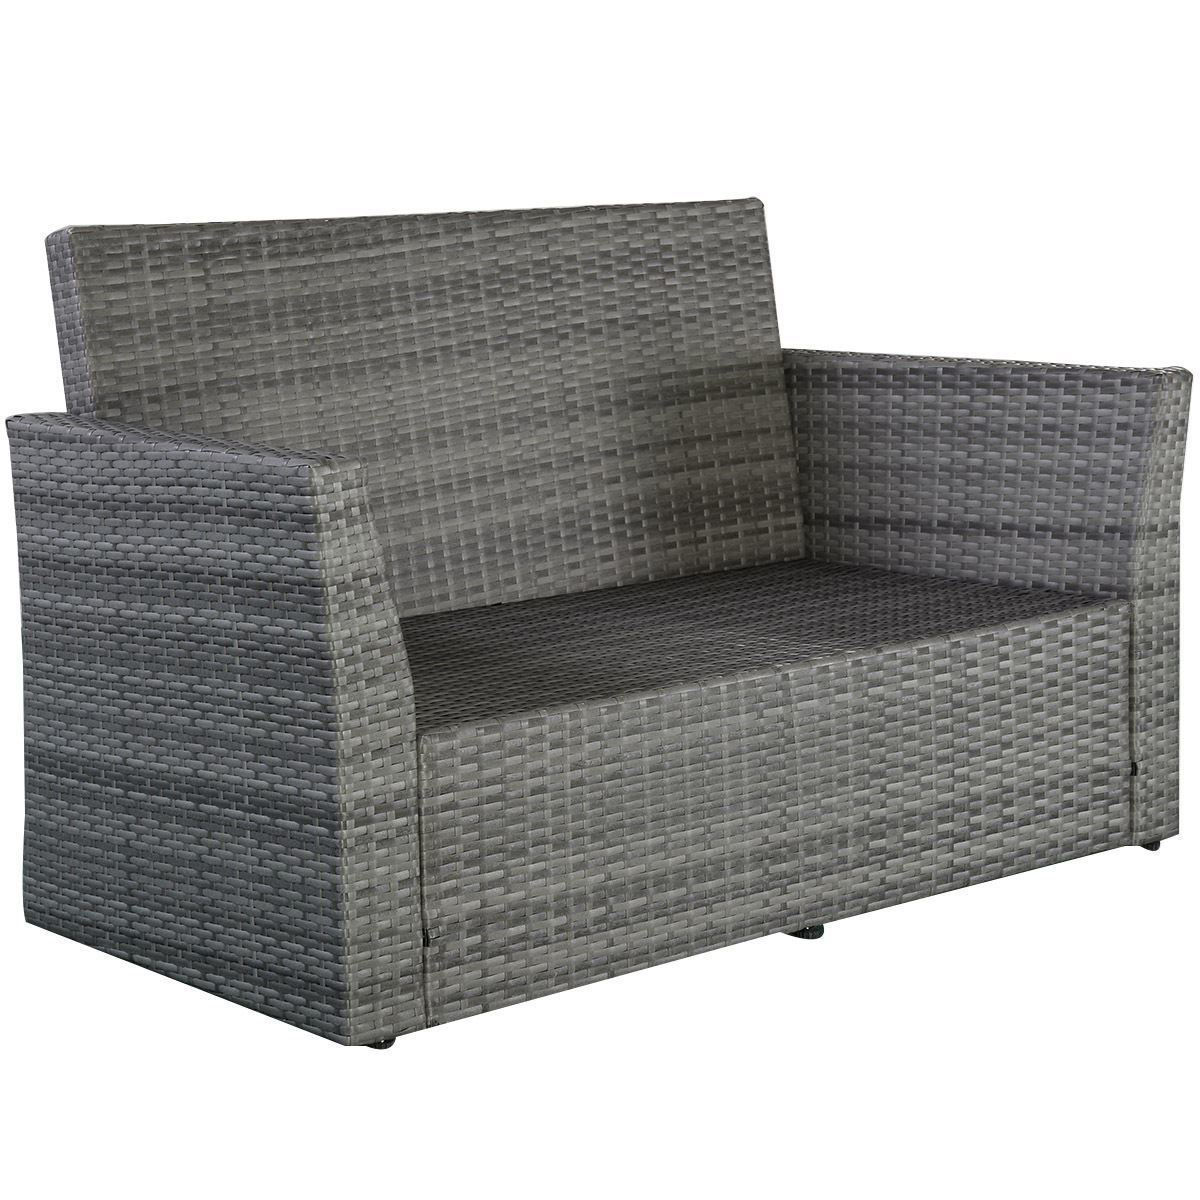 Picture of Outdoor Patio Furniture Set Wicker Rattan - 4 Pcs Gray